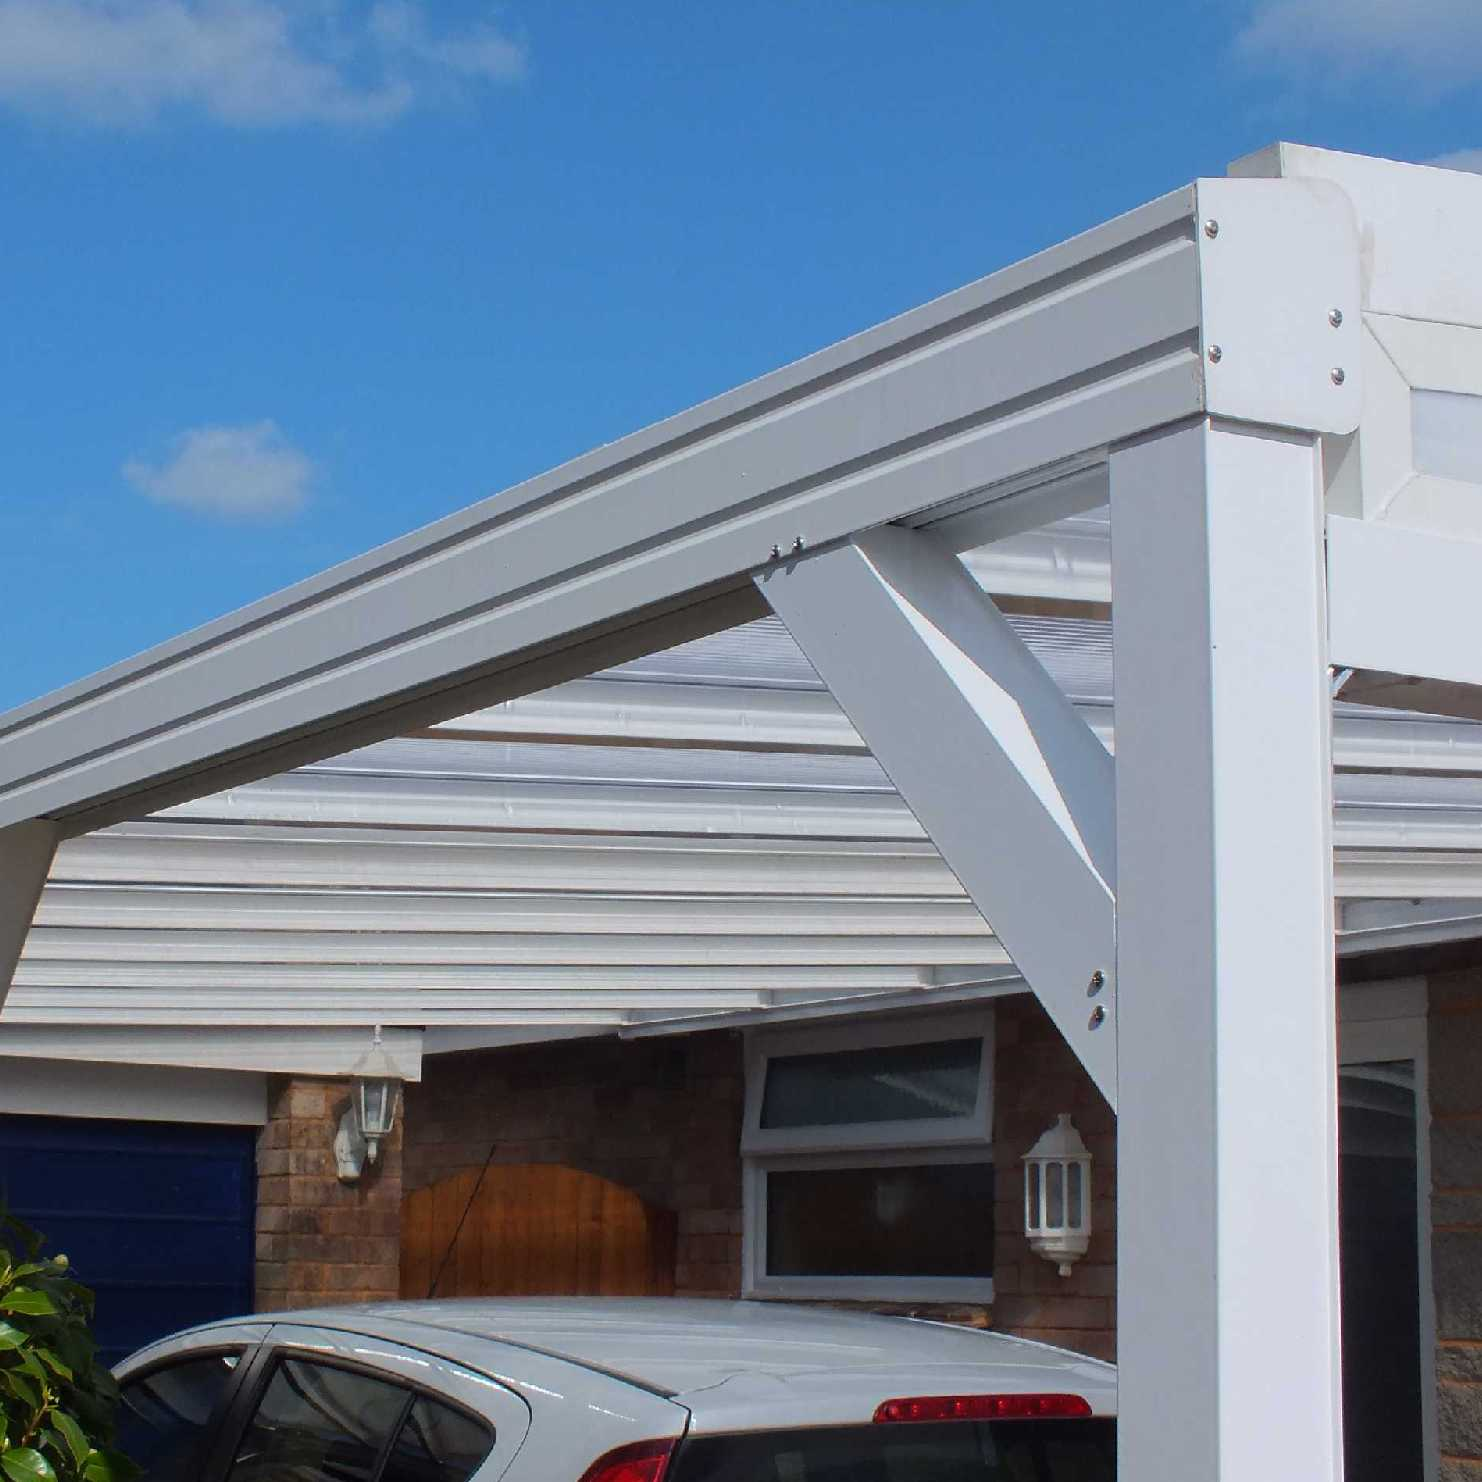 Buy Omega Smart White Lean-To Canopy with 16mm Polycarbonate Glazing - 5.6m (W) x 3.5m (P), (3) Supporting Posts online today